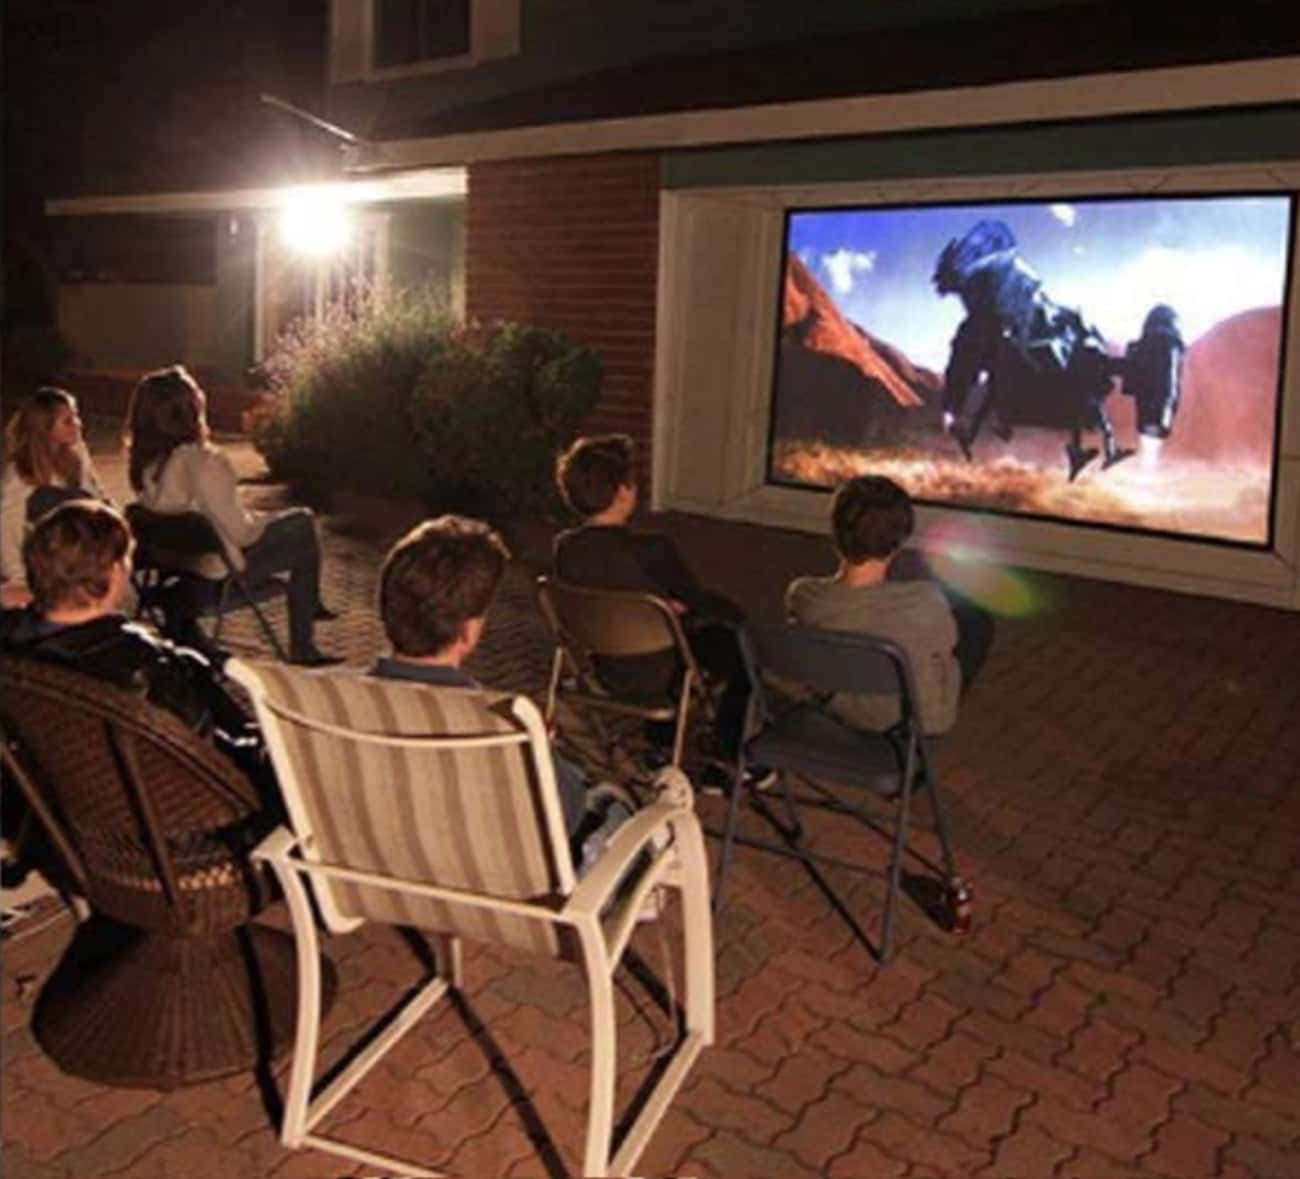 Projection Screen is listed (or ranked) 2 on the list 20 Must-Haves For Throwing A Spectacular Backyard Movie Night